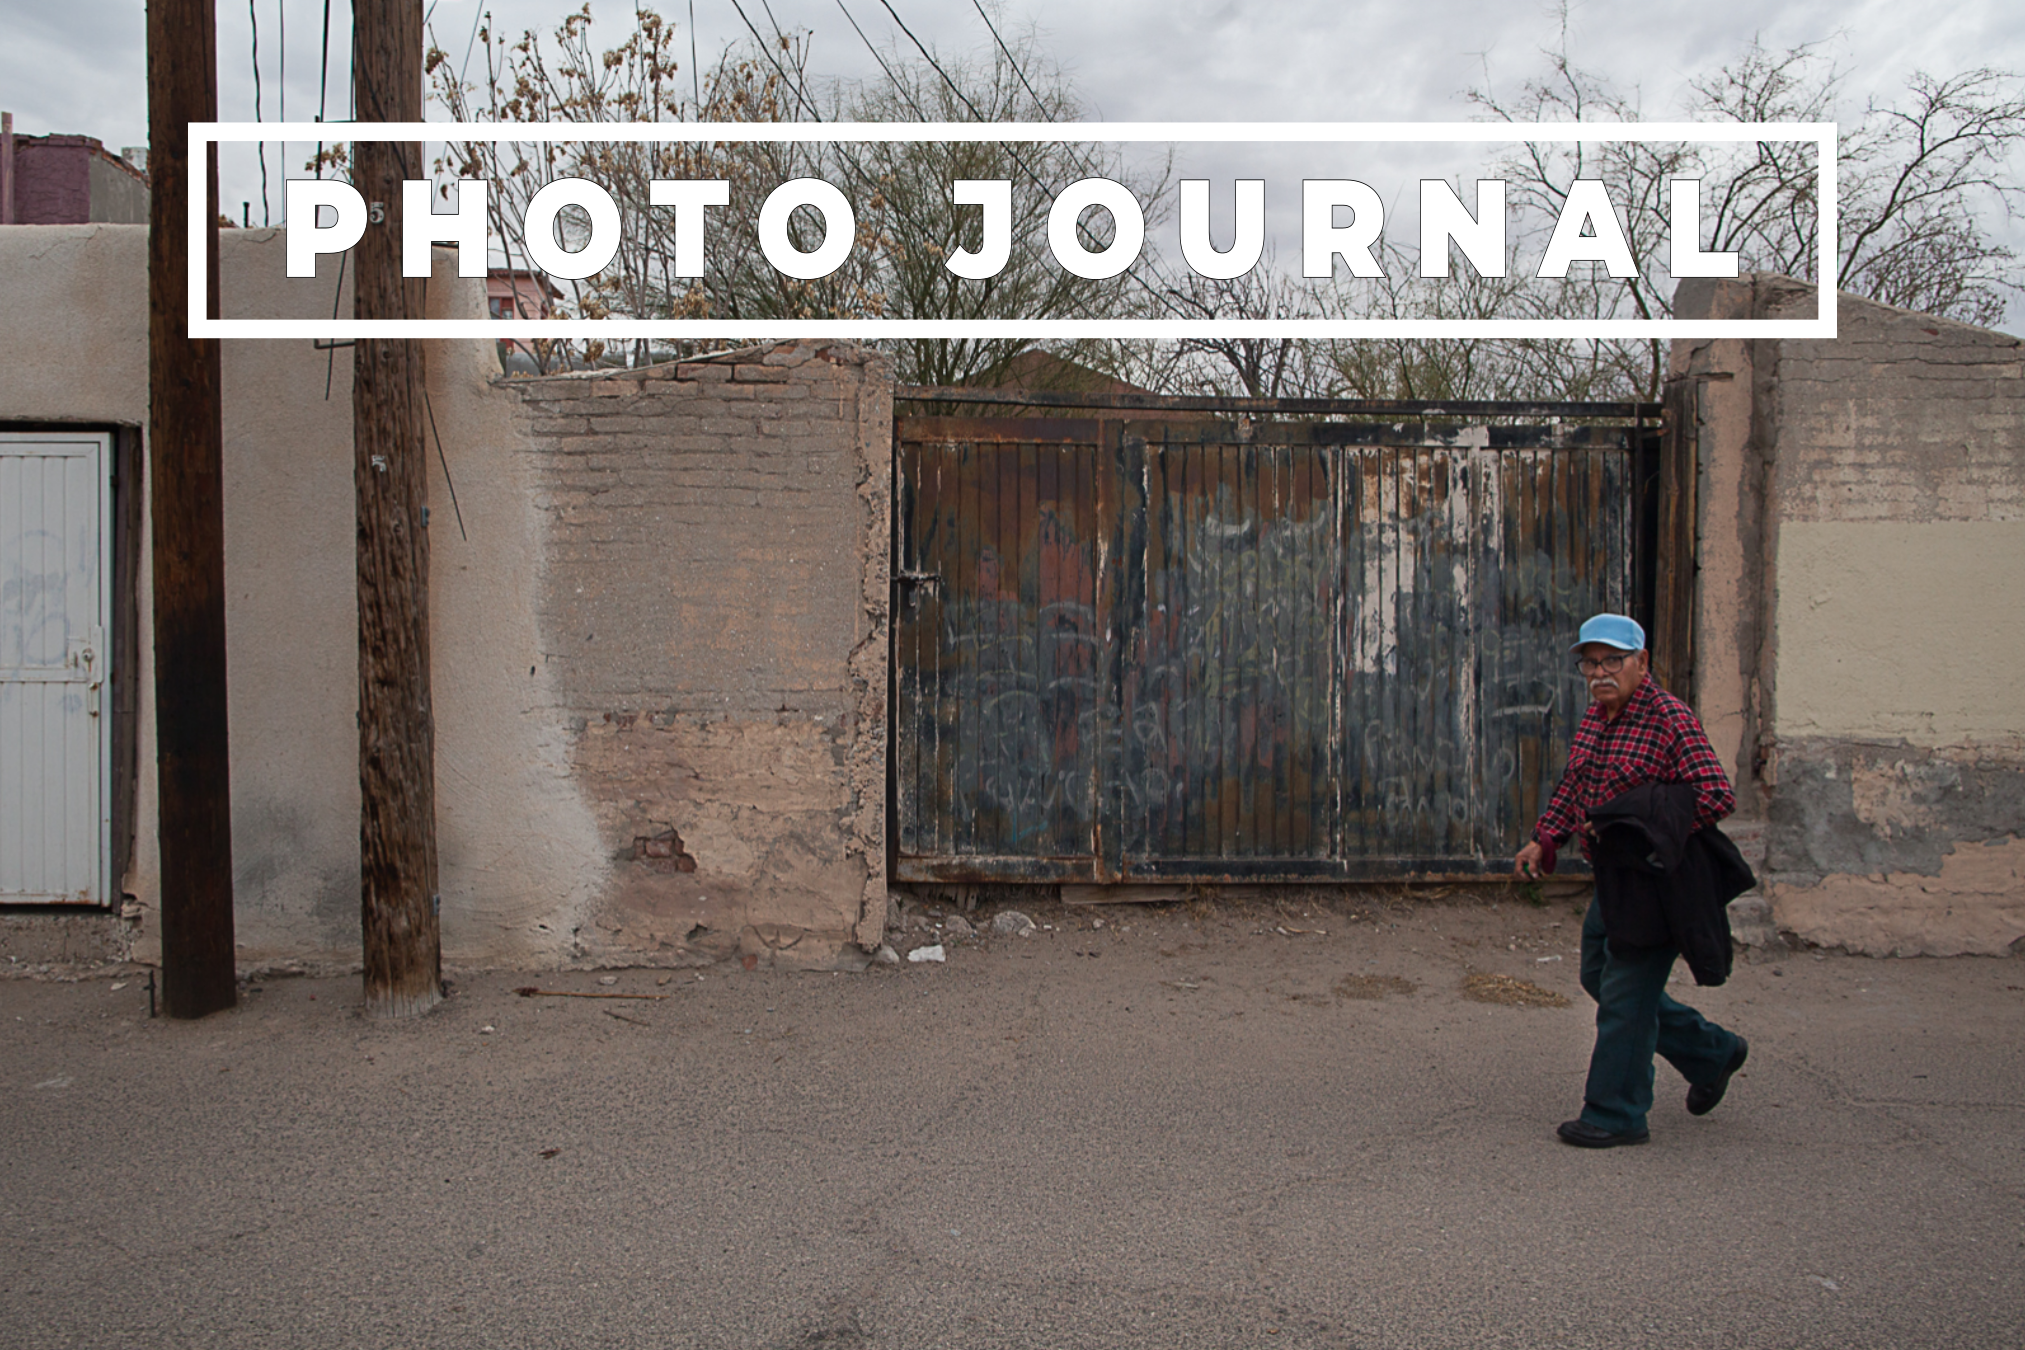 El Paso, TX - August 10, 2019Interstate Magazine photographed El Paso in mid March of this year. Then, on August 3, 2019, a lone shooter opened fire at the Cielo Vista Walmart, killing 22 people and injuring 24 more. Events like this jarringly alter a city, as if the entire population were involved in a high speed car crash. Still, while the El Paso of today undoubtedly feels different from the El Paso photographed this past March, those earlier photographs nonetheless capture the same, ever evolving El Paso. It is a city that wears its Mexican roots unapologetically on its sleeve, integral to the warp and weft of the American tapestry. Read more …